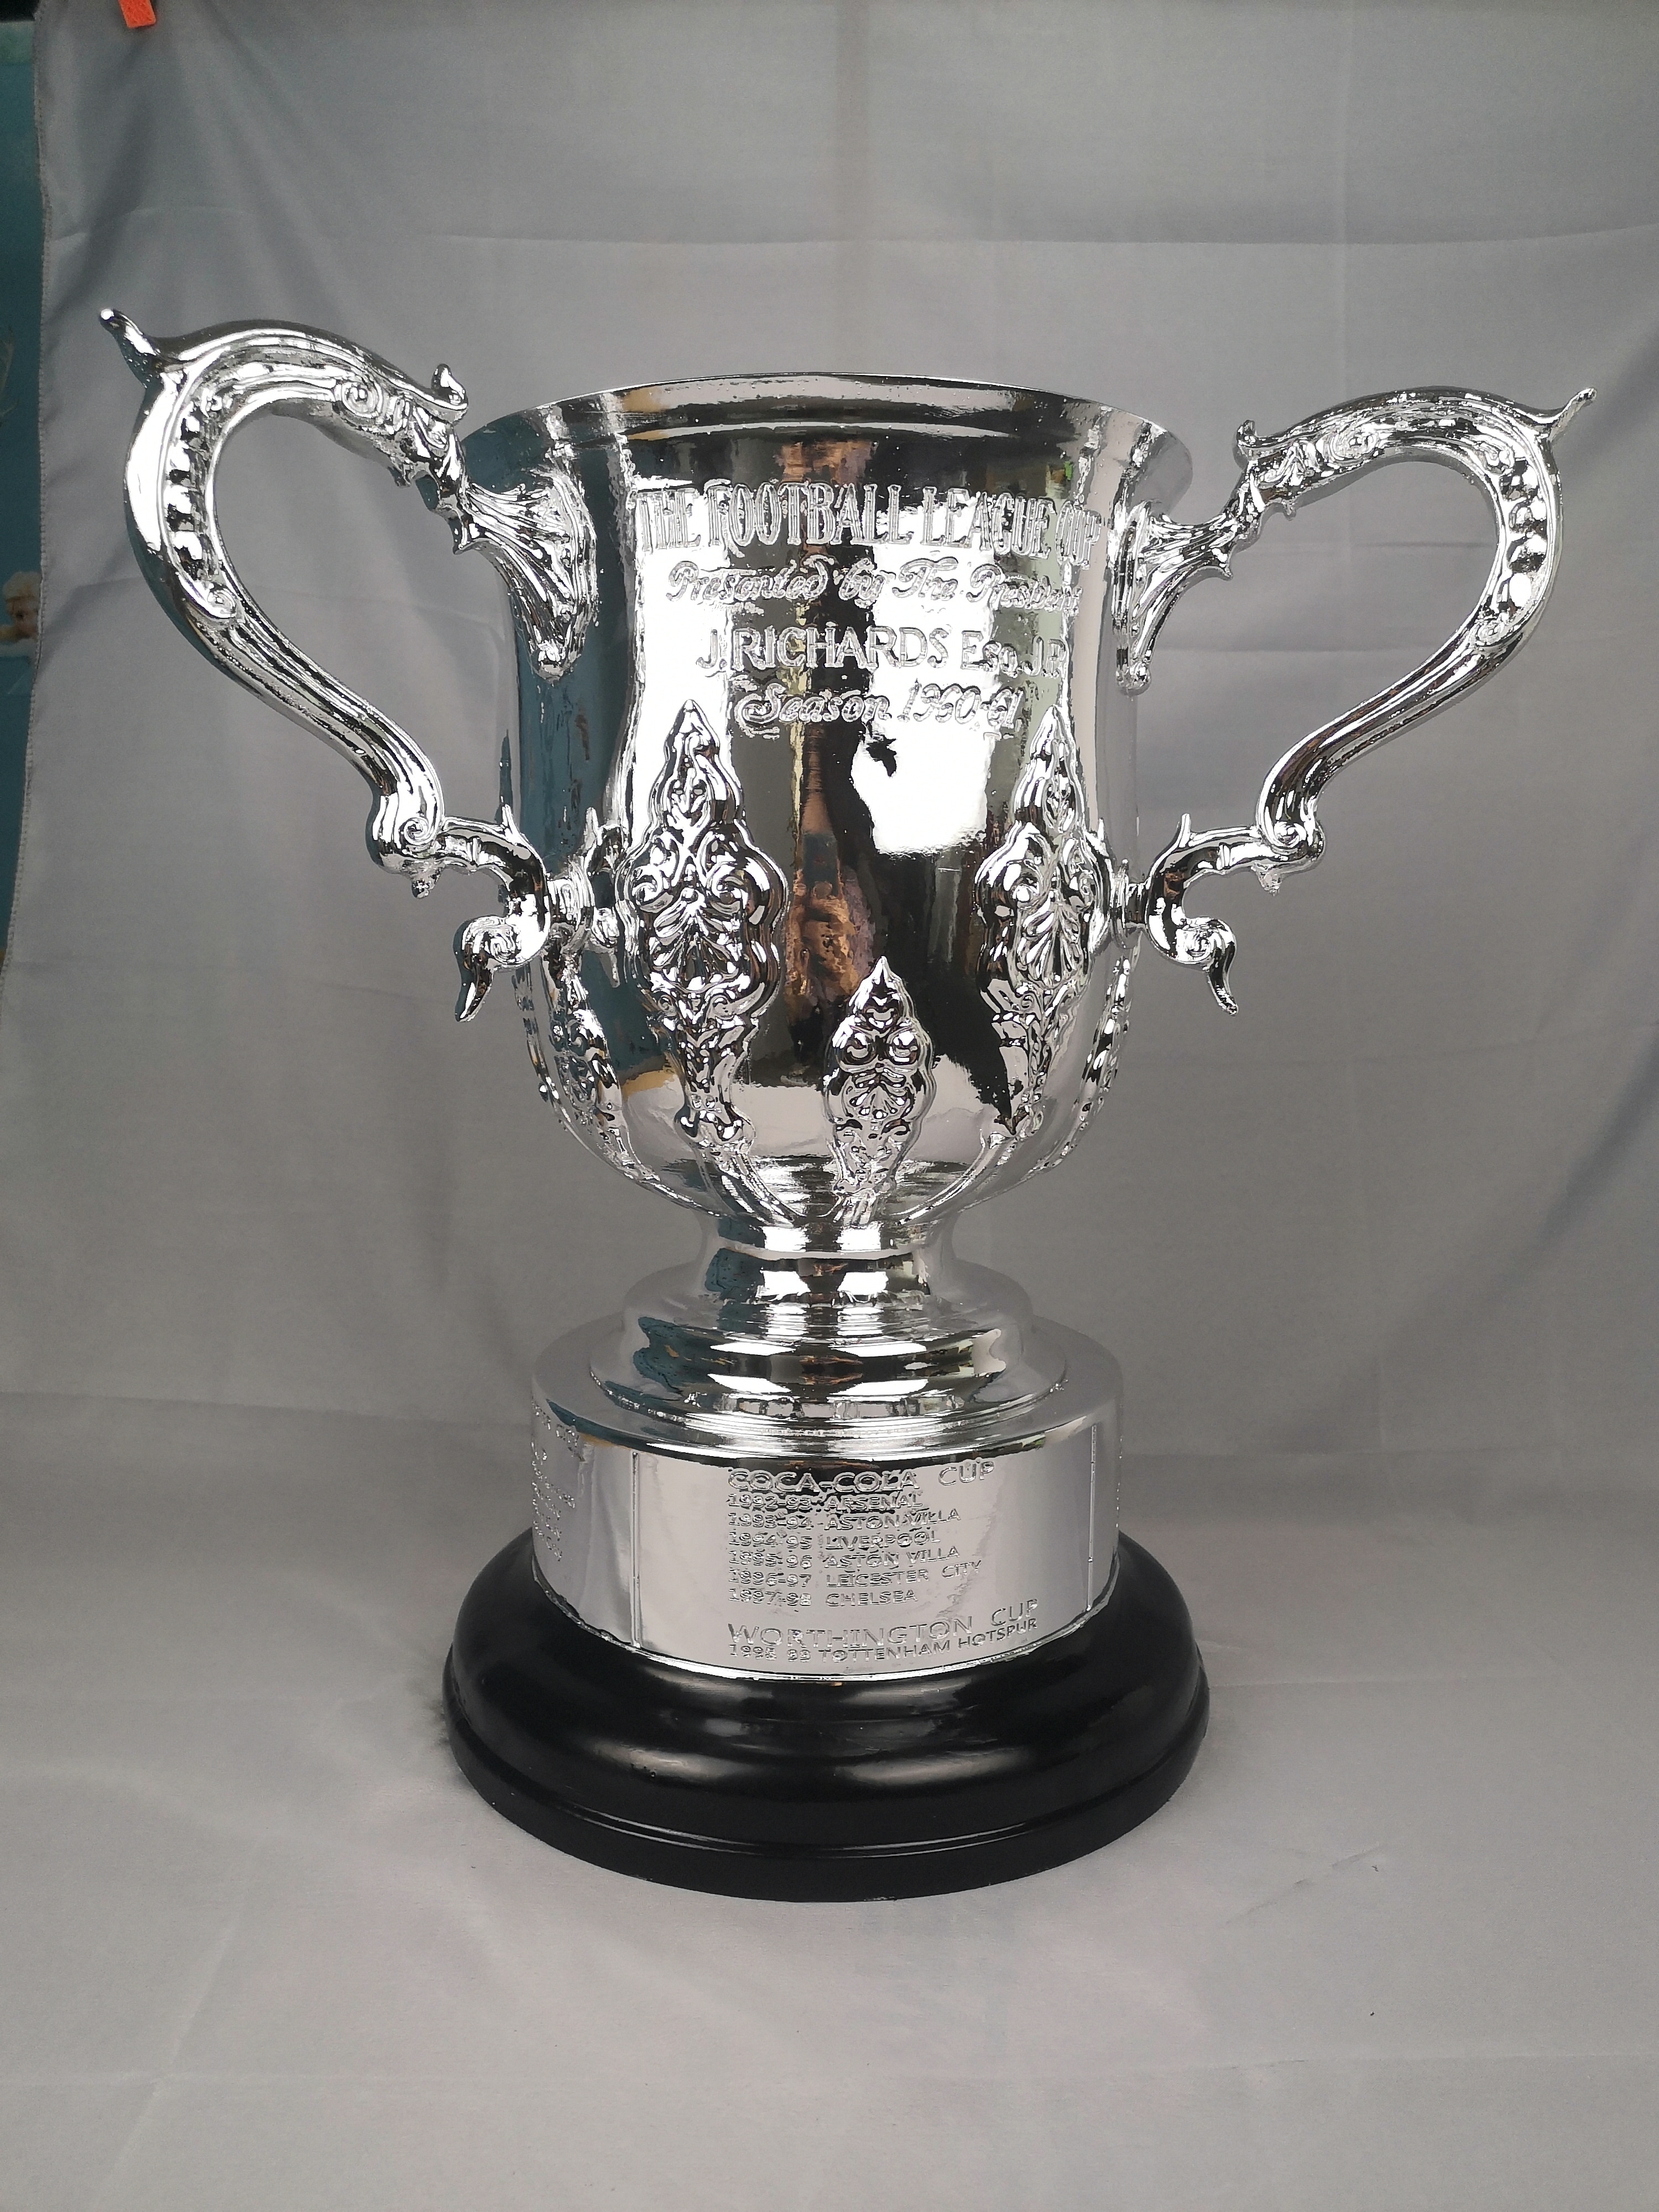 The EFL Cup Trophy Cup 40CM Height 1:1 Real Size The Carabao Cup Trophy The Football Championship Cup Soccer Trophy Cup